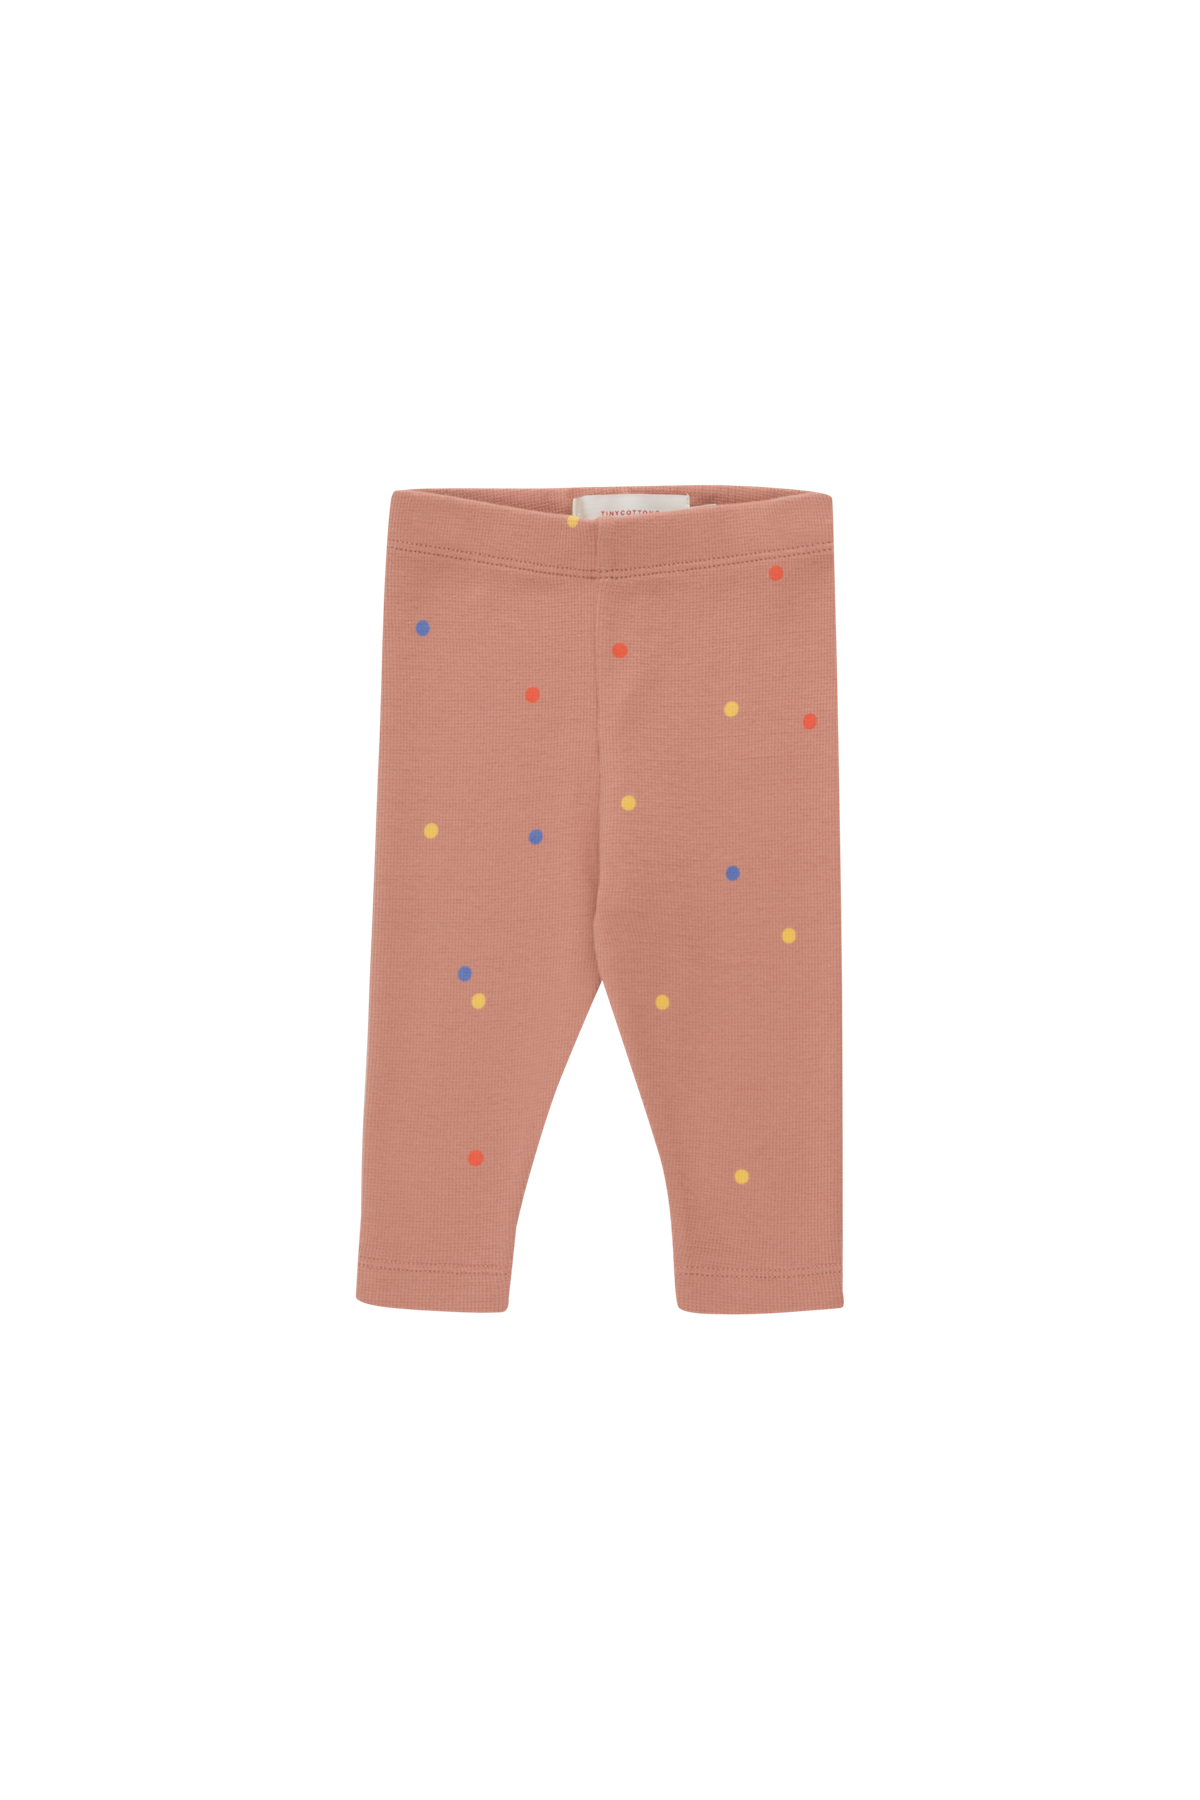 tinycottons ice cream dots baby pant mauve